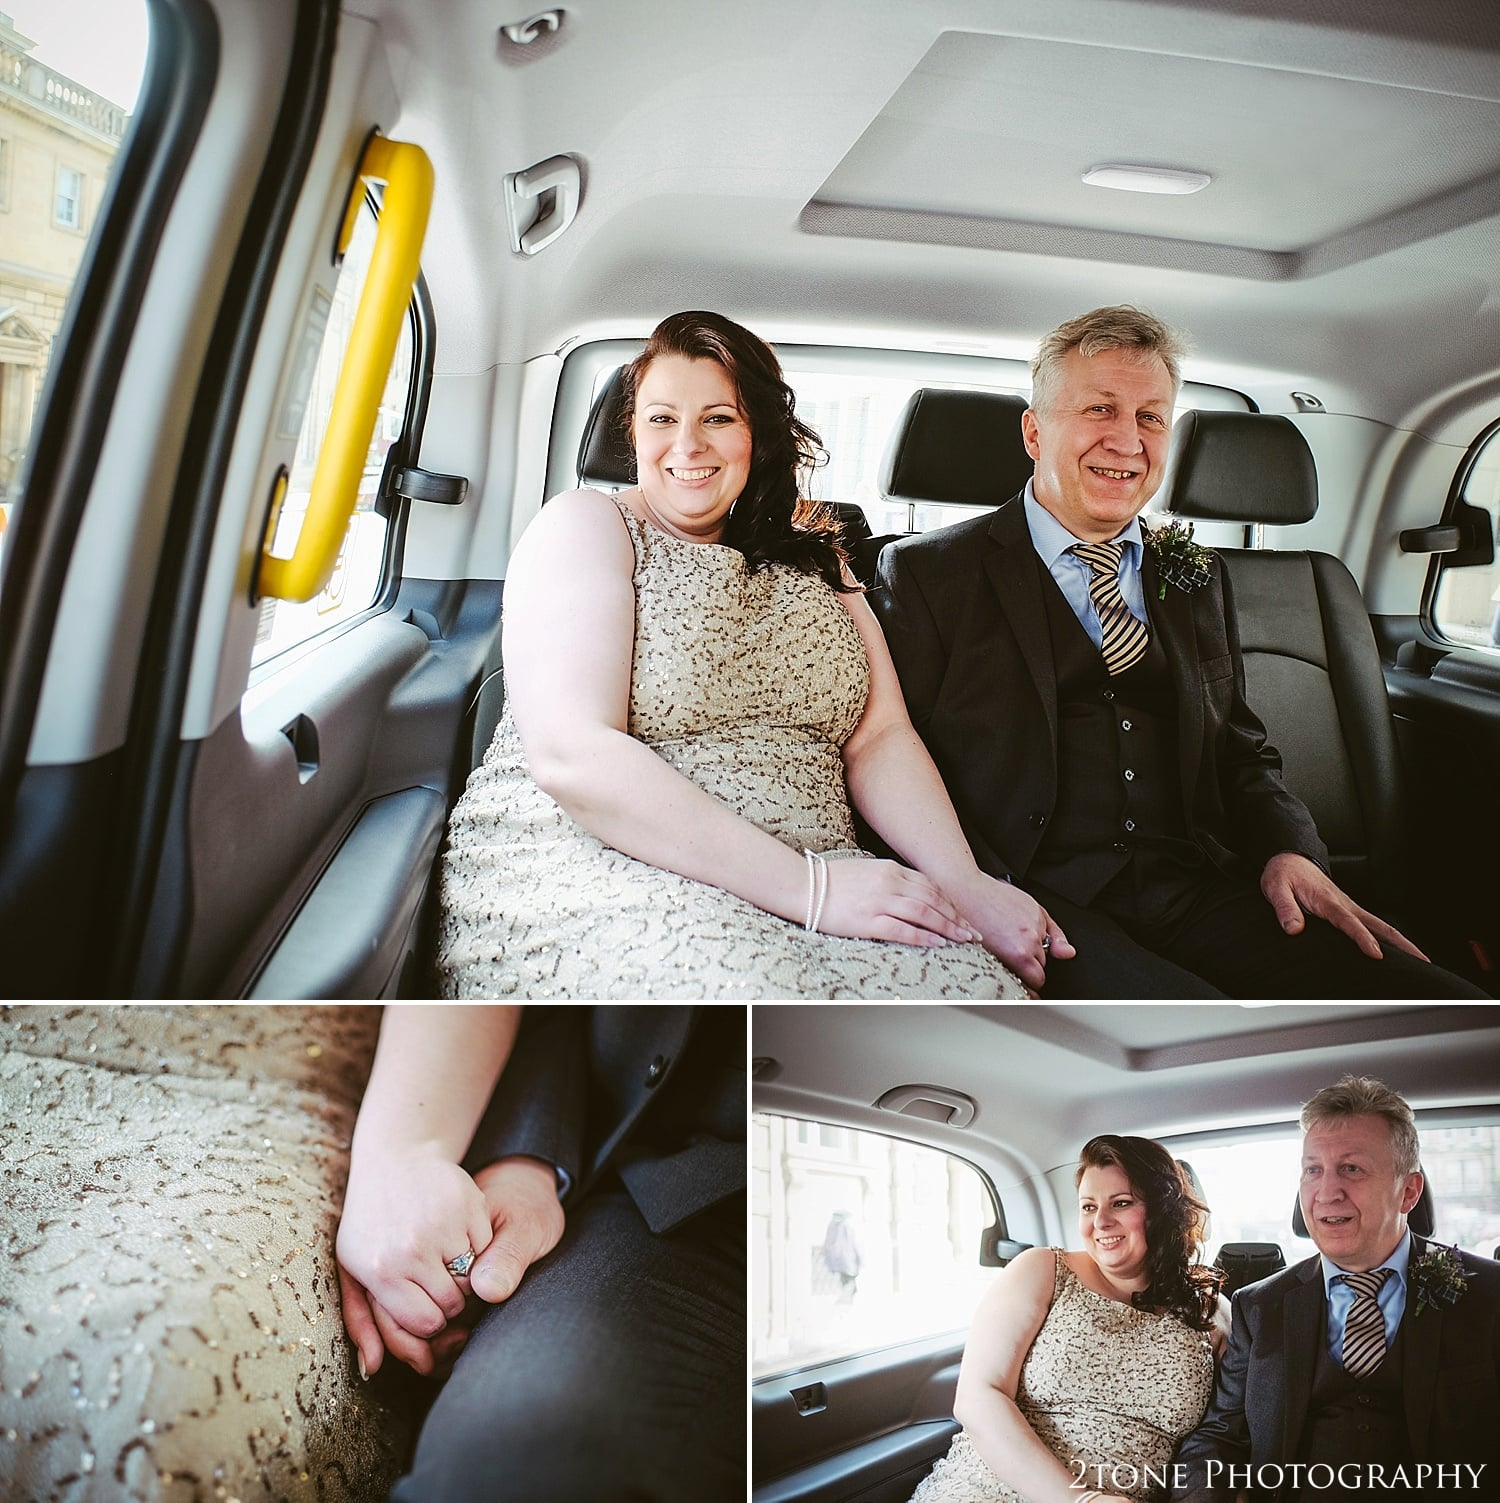 Wedding, bride and groom travel by taxi to their wedding reception in Edinburgh.  Photography by 2tone Photography